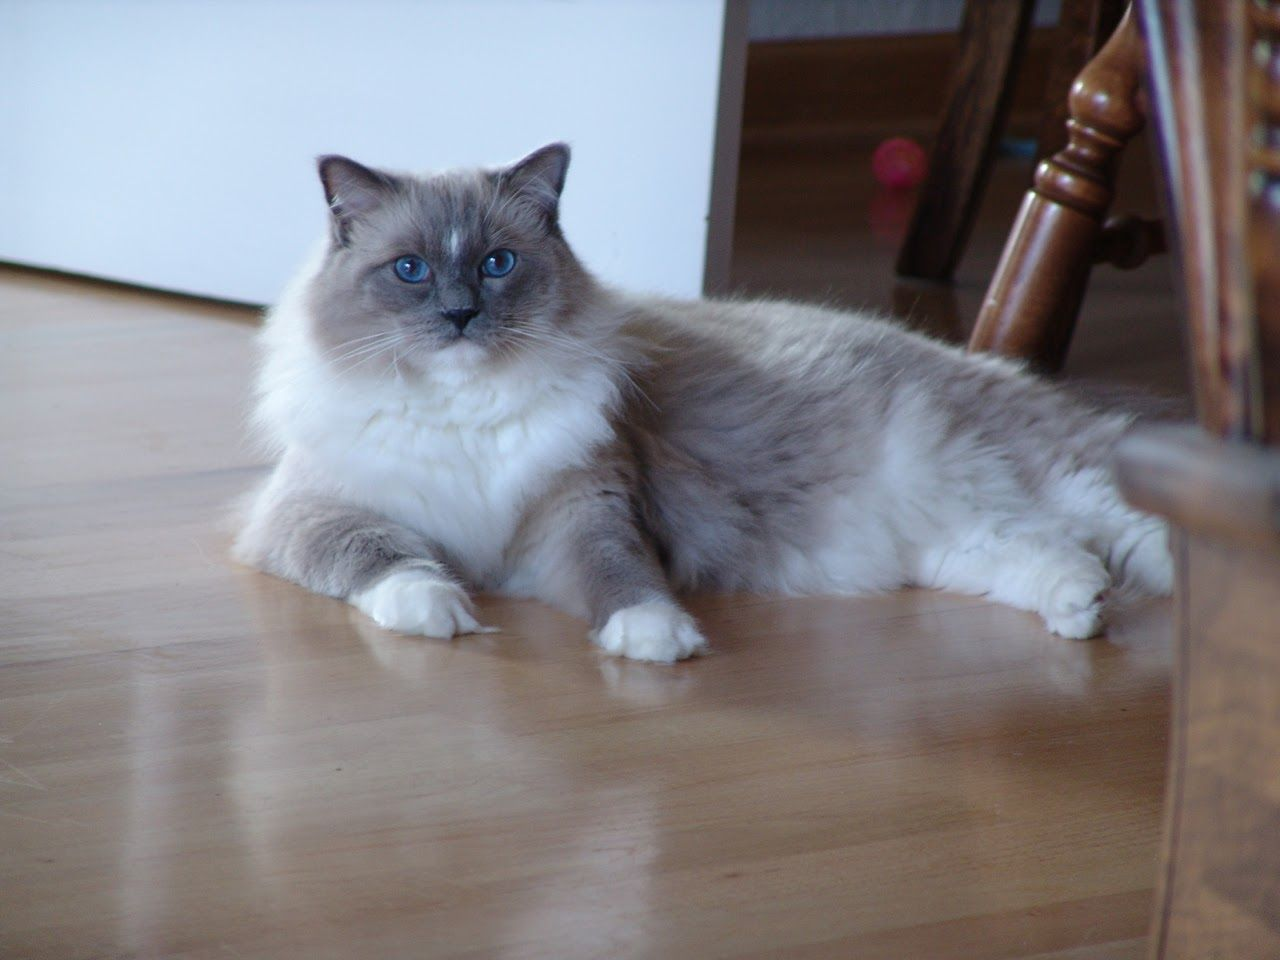 Hobart Ragdoll Of The Week A Blue Mitted Ragdoll Cat With A Blaze Ragdoll Cat Ragdoll Cat Colors Ragdoll